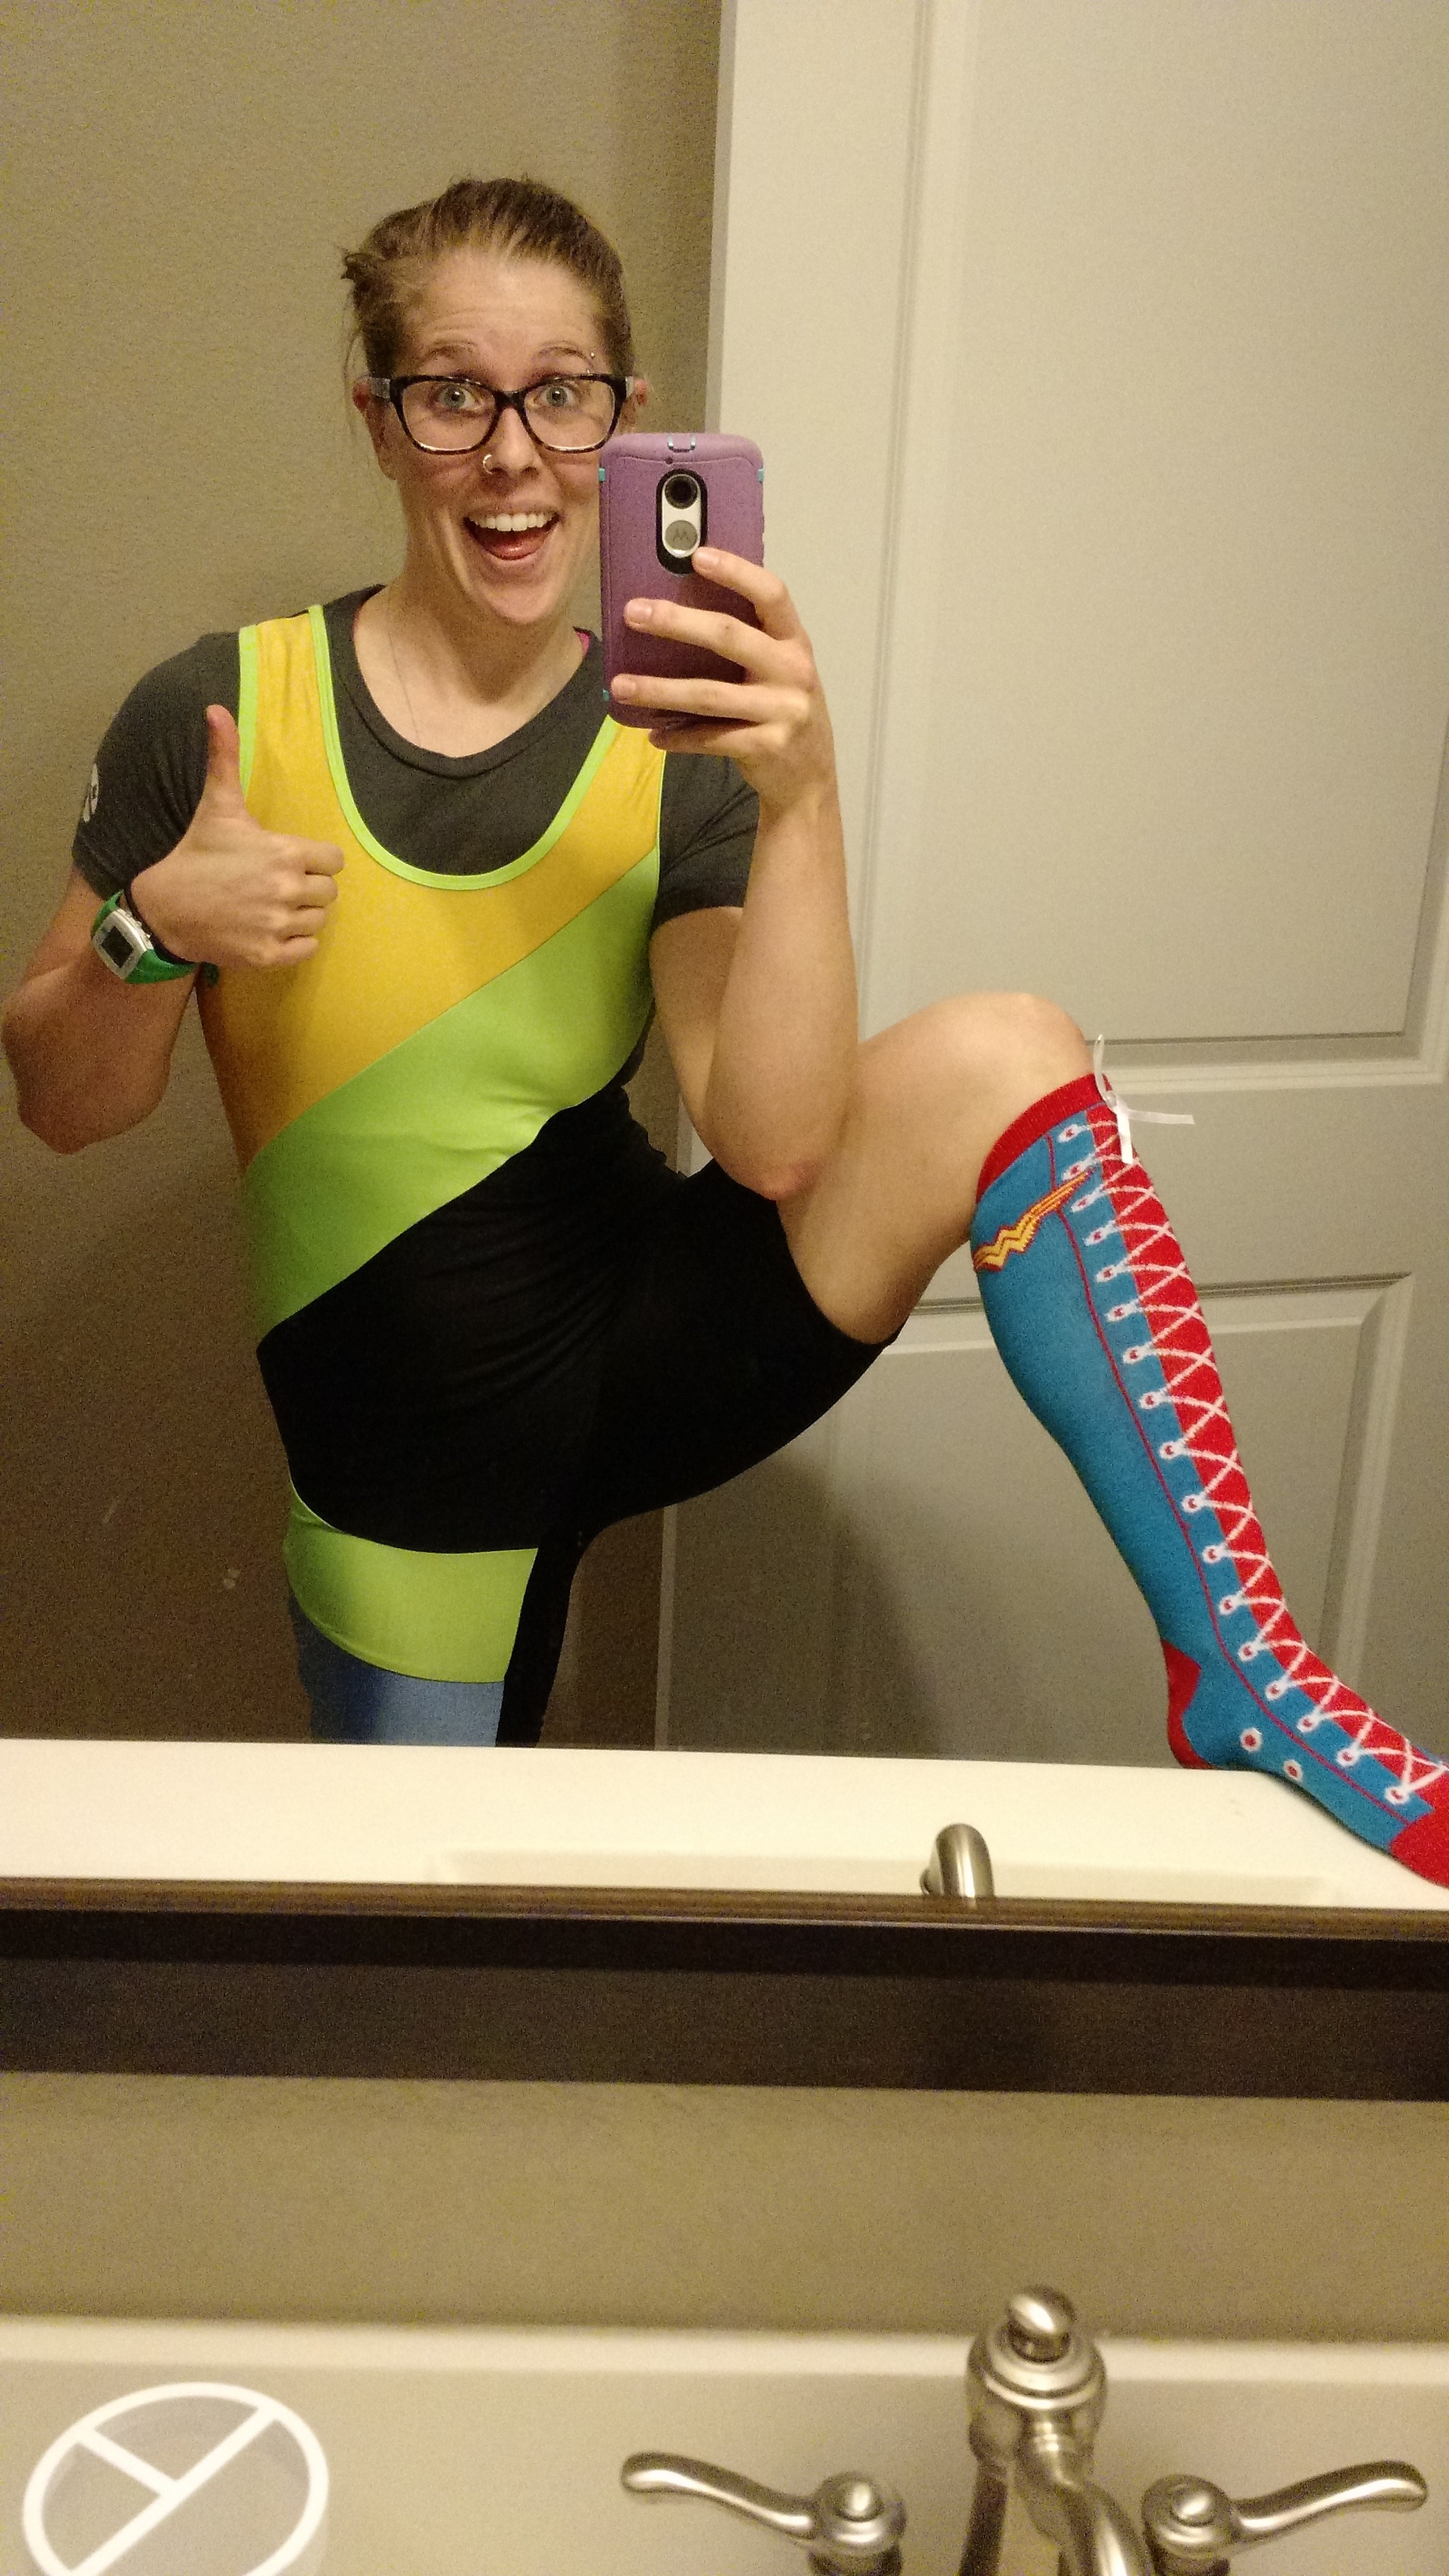 Fun singlet and socks picture the day before the meet. As nervous as I was, I'm all about having fun at these competitions, so I like to be the one of the flashiest people on the platform. :P